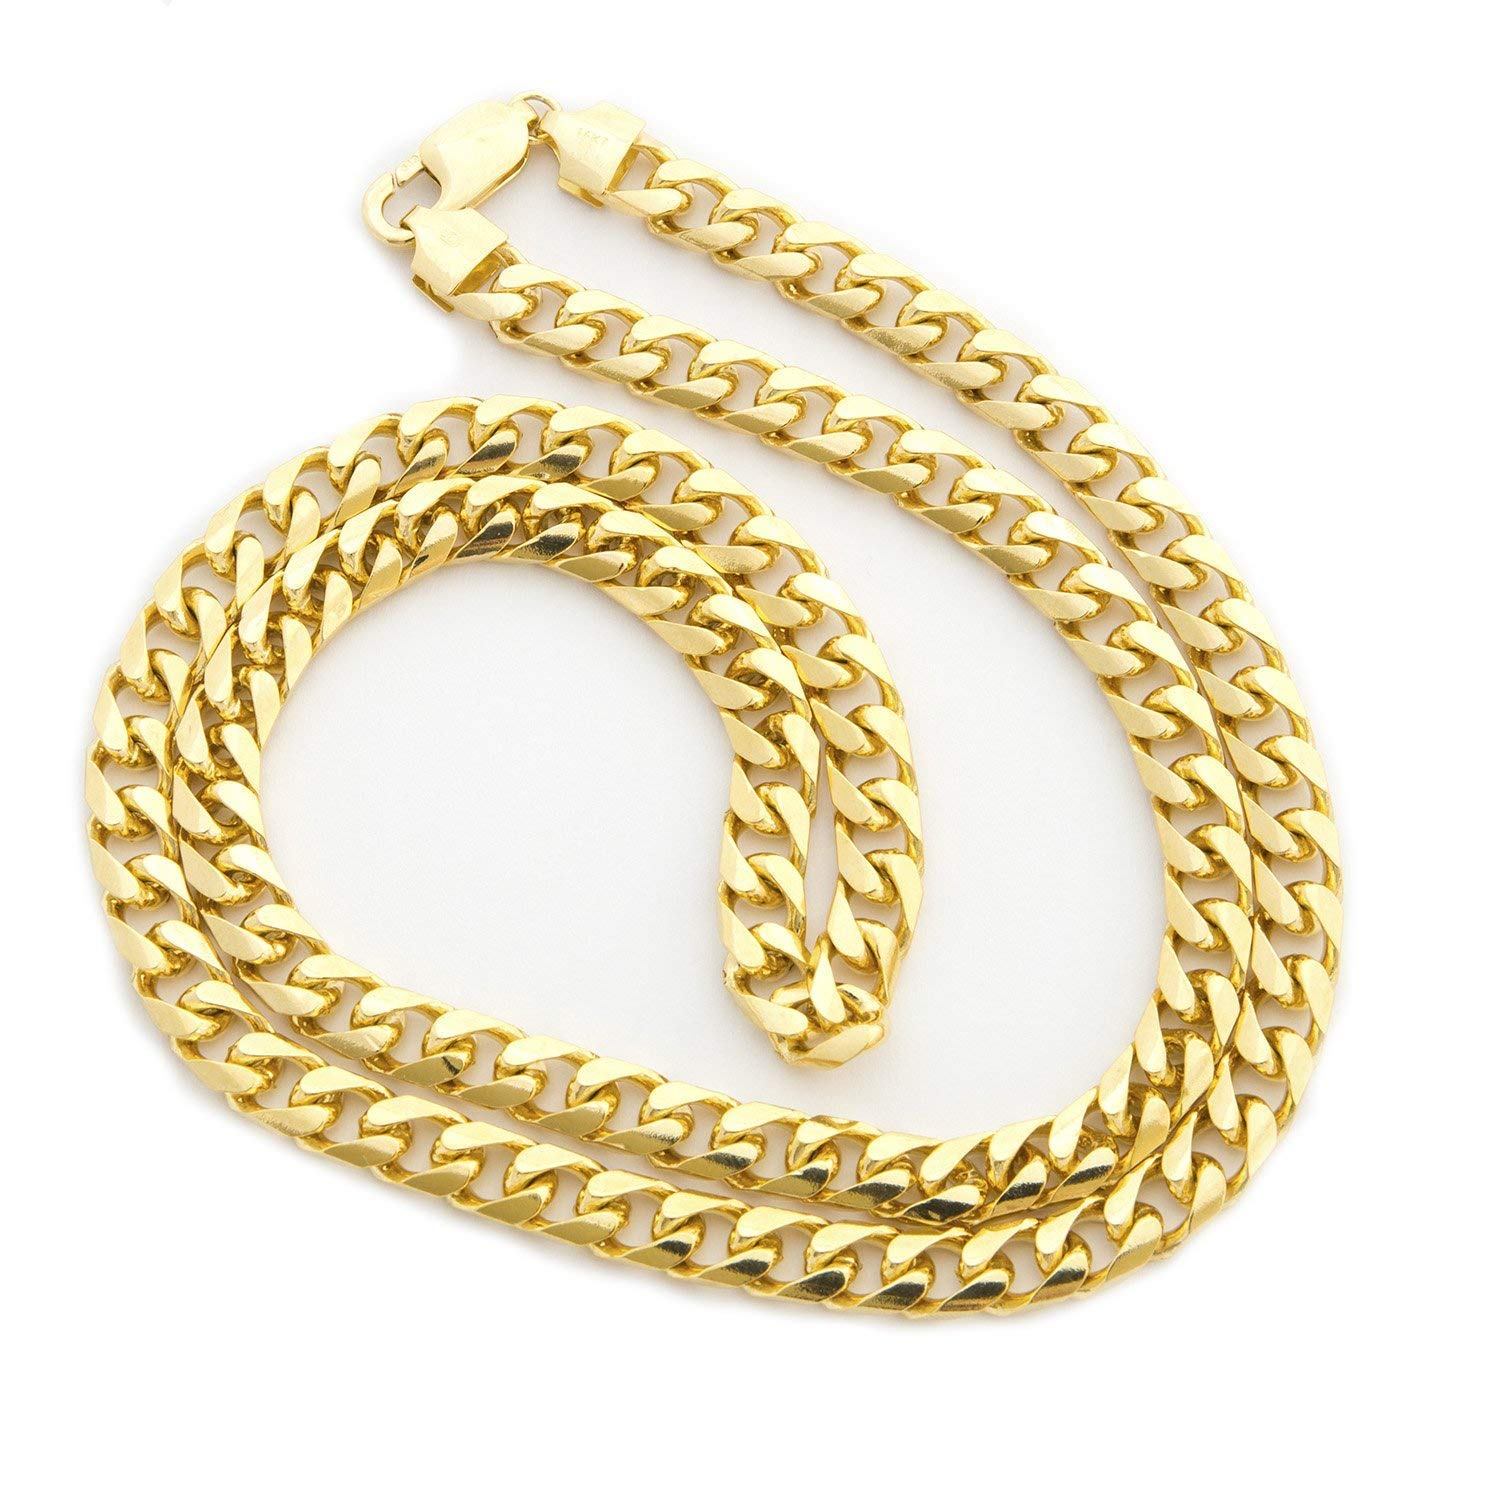 14K Gold Chain Necklace 9MM Smooth Cuban Curb Link Tarnish Resistant Fashion Jewelry Diamond Cut for Men Hollywood Jewelry HPG1116